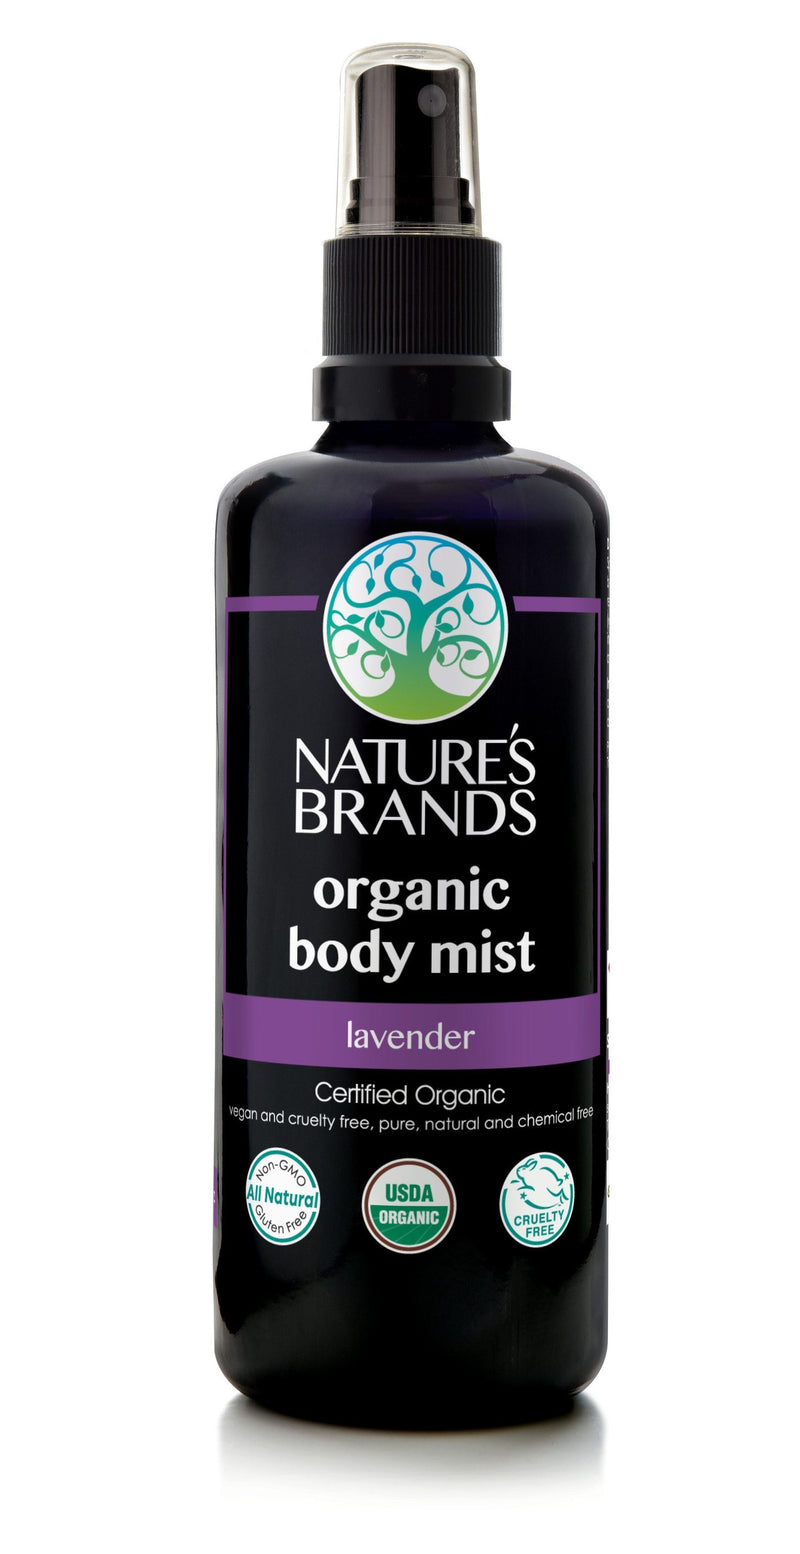 Herbal Choice Mari Organic Body Mist - Herbal Choice Mari Organic Body Mist - Herbal Choice Mari Organic Body Mist